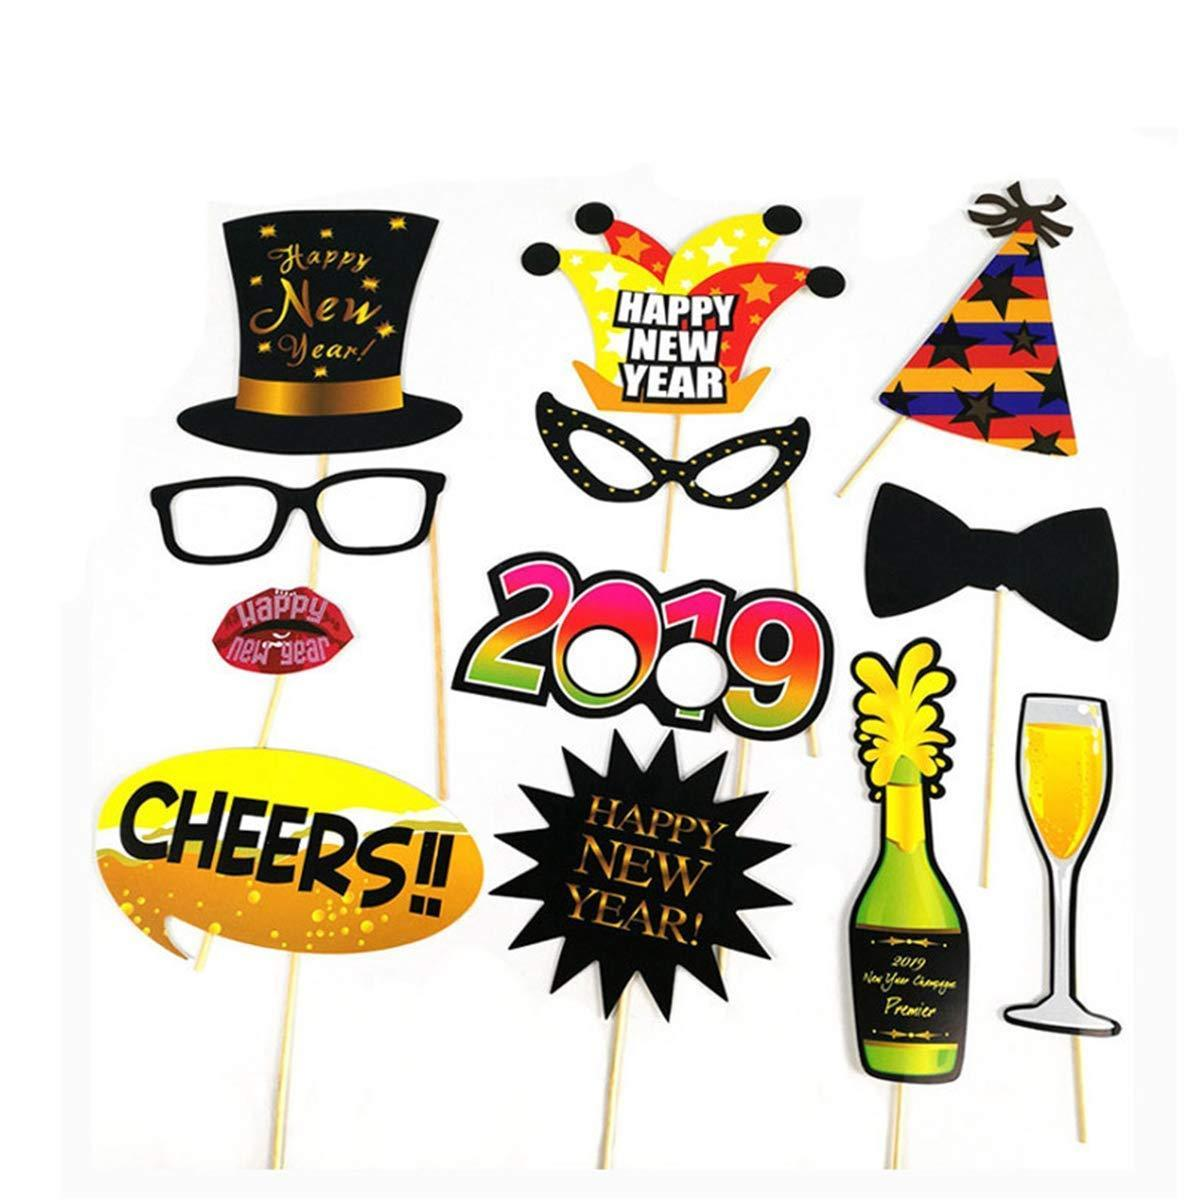 2019 Happy New Year Photo Booth Props Party Decor Selfie Kit